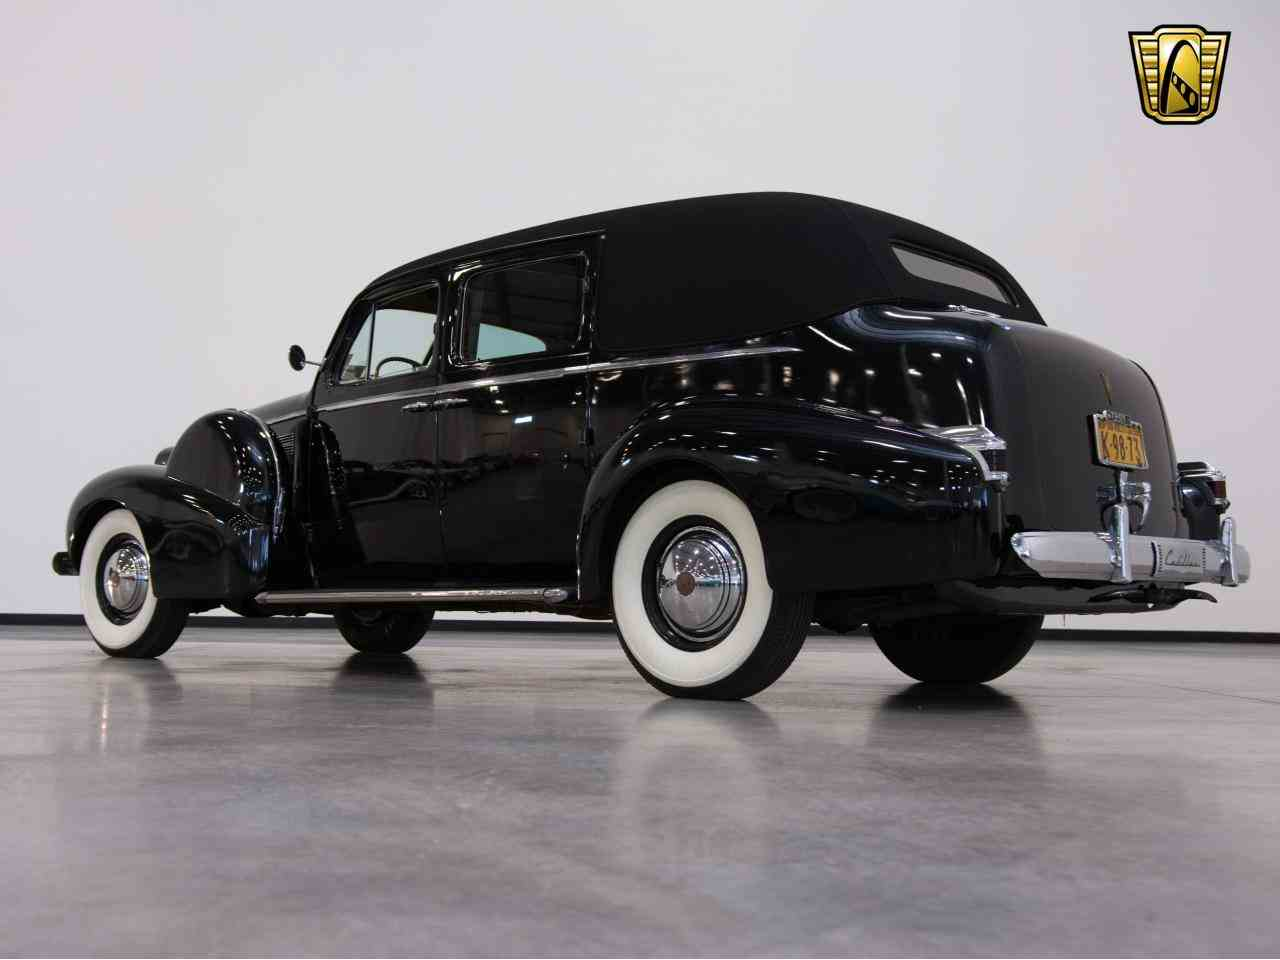 Large Picture of Classic '39 Cadillac 7 Passenger Touring W/ Trunk Offered by Gateway Classic Cars - Milwaukee - KHP0